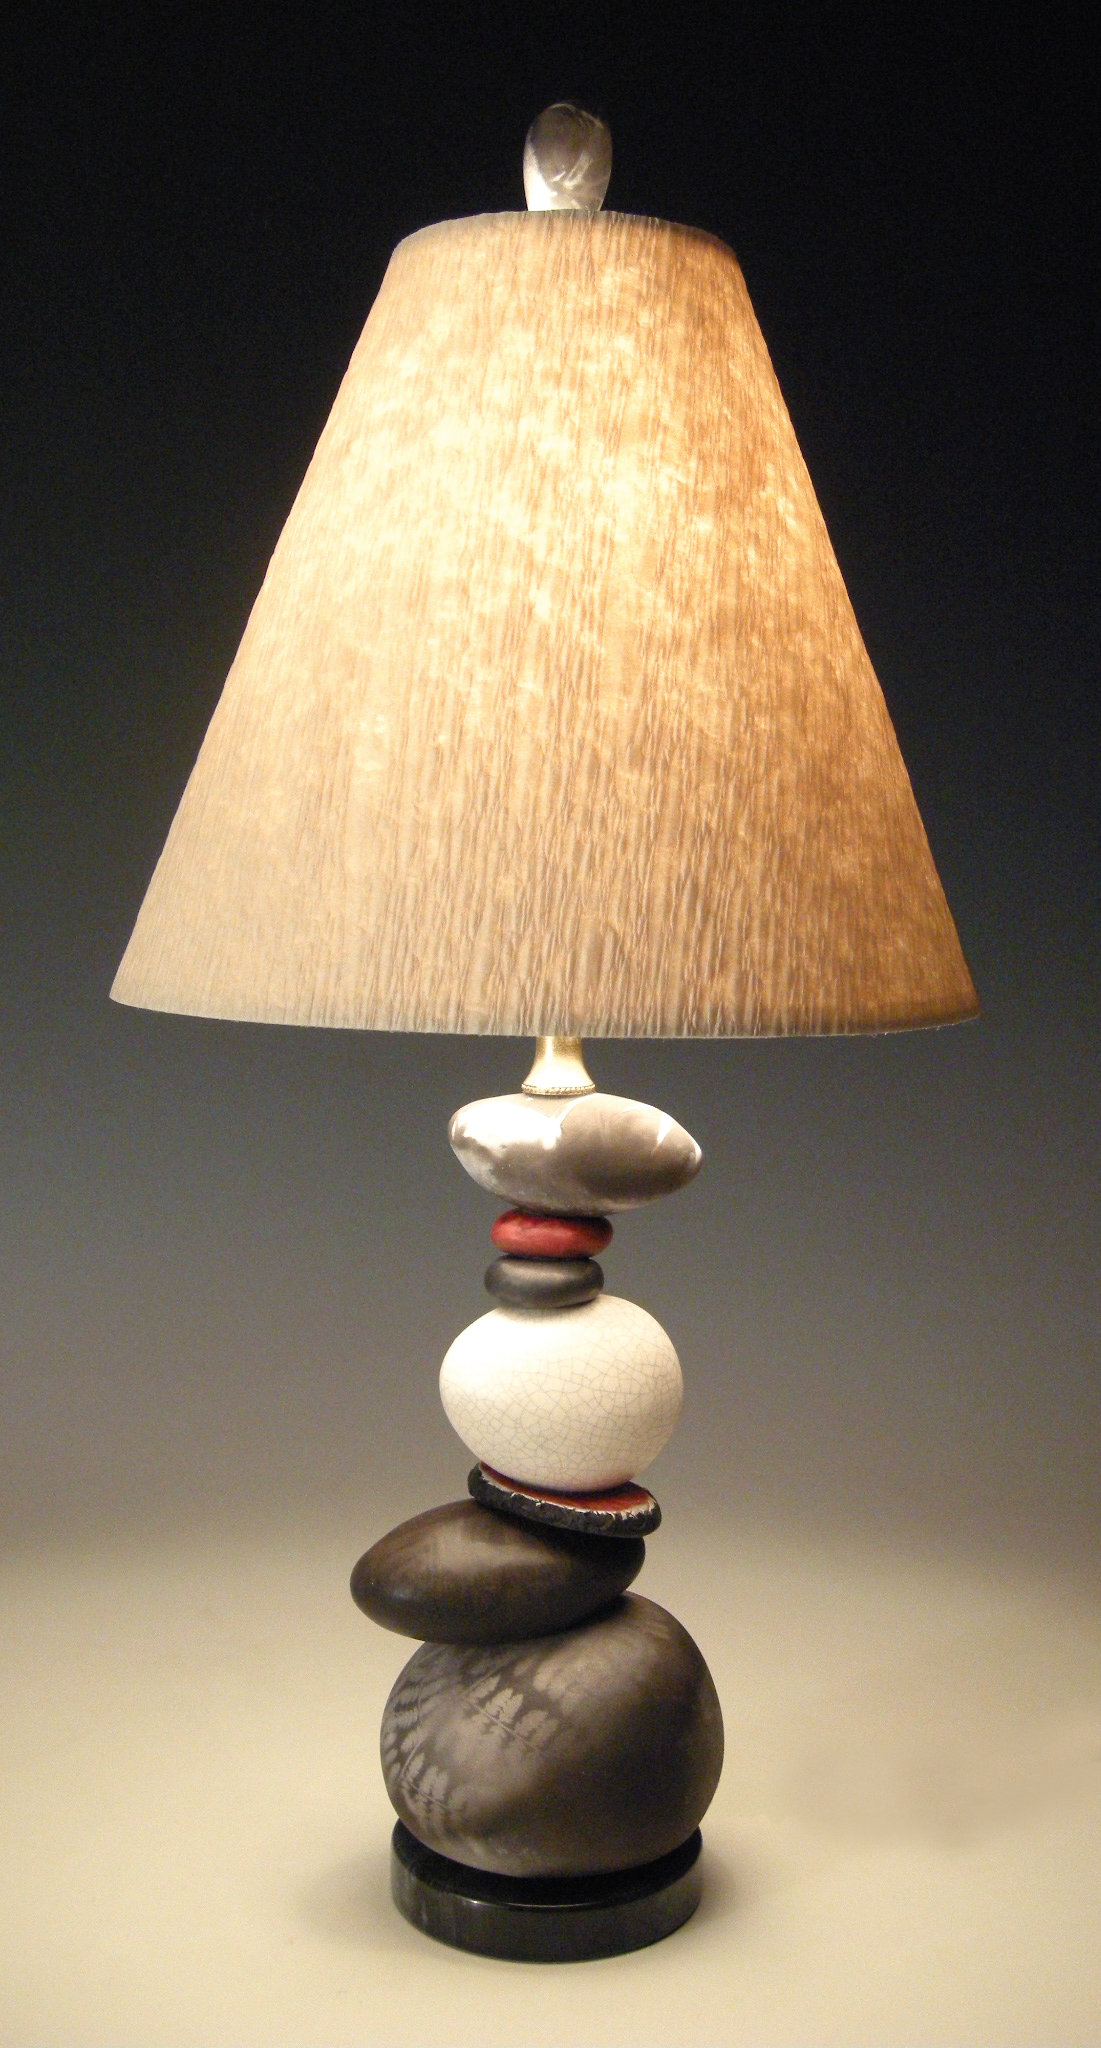 Shadow And Light By Jan Jacque Ceramic Table Lamp